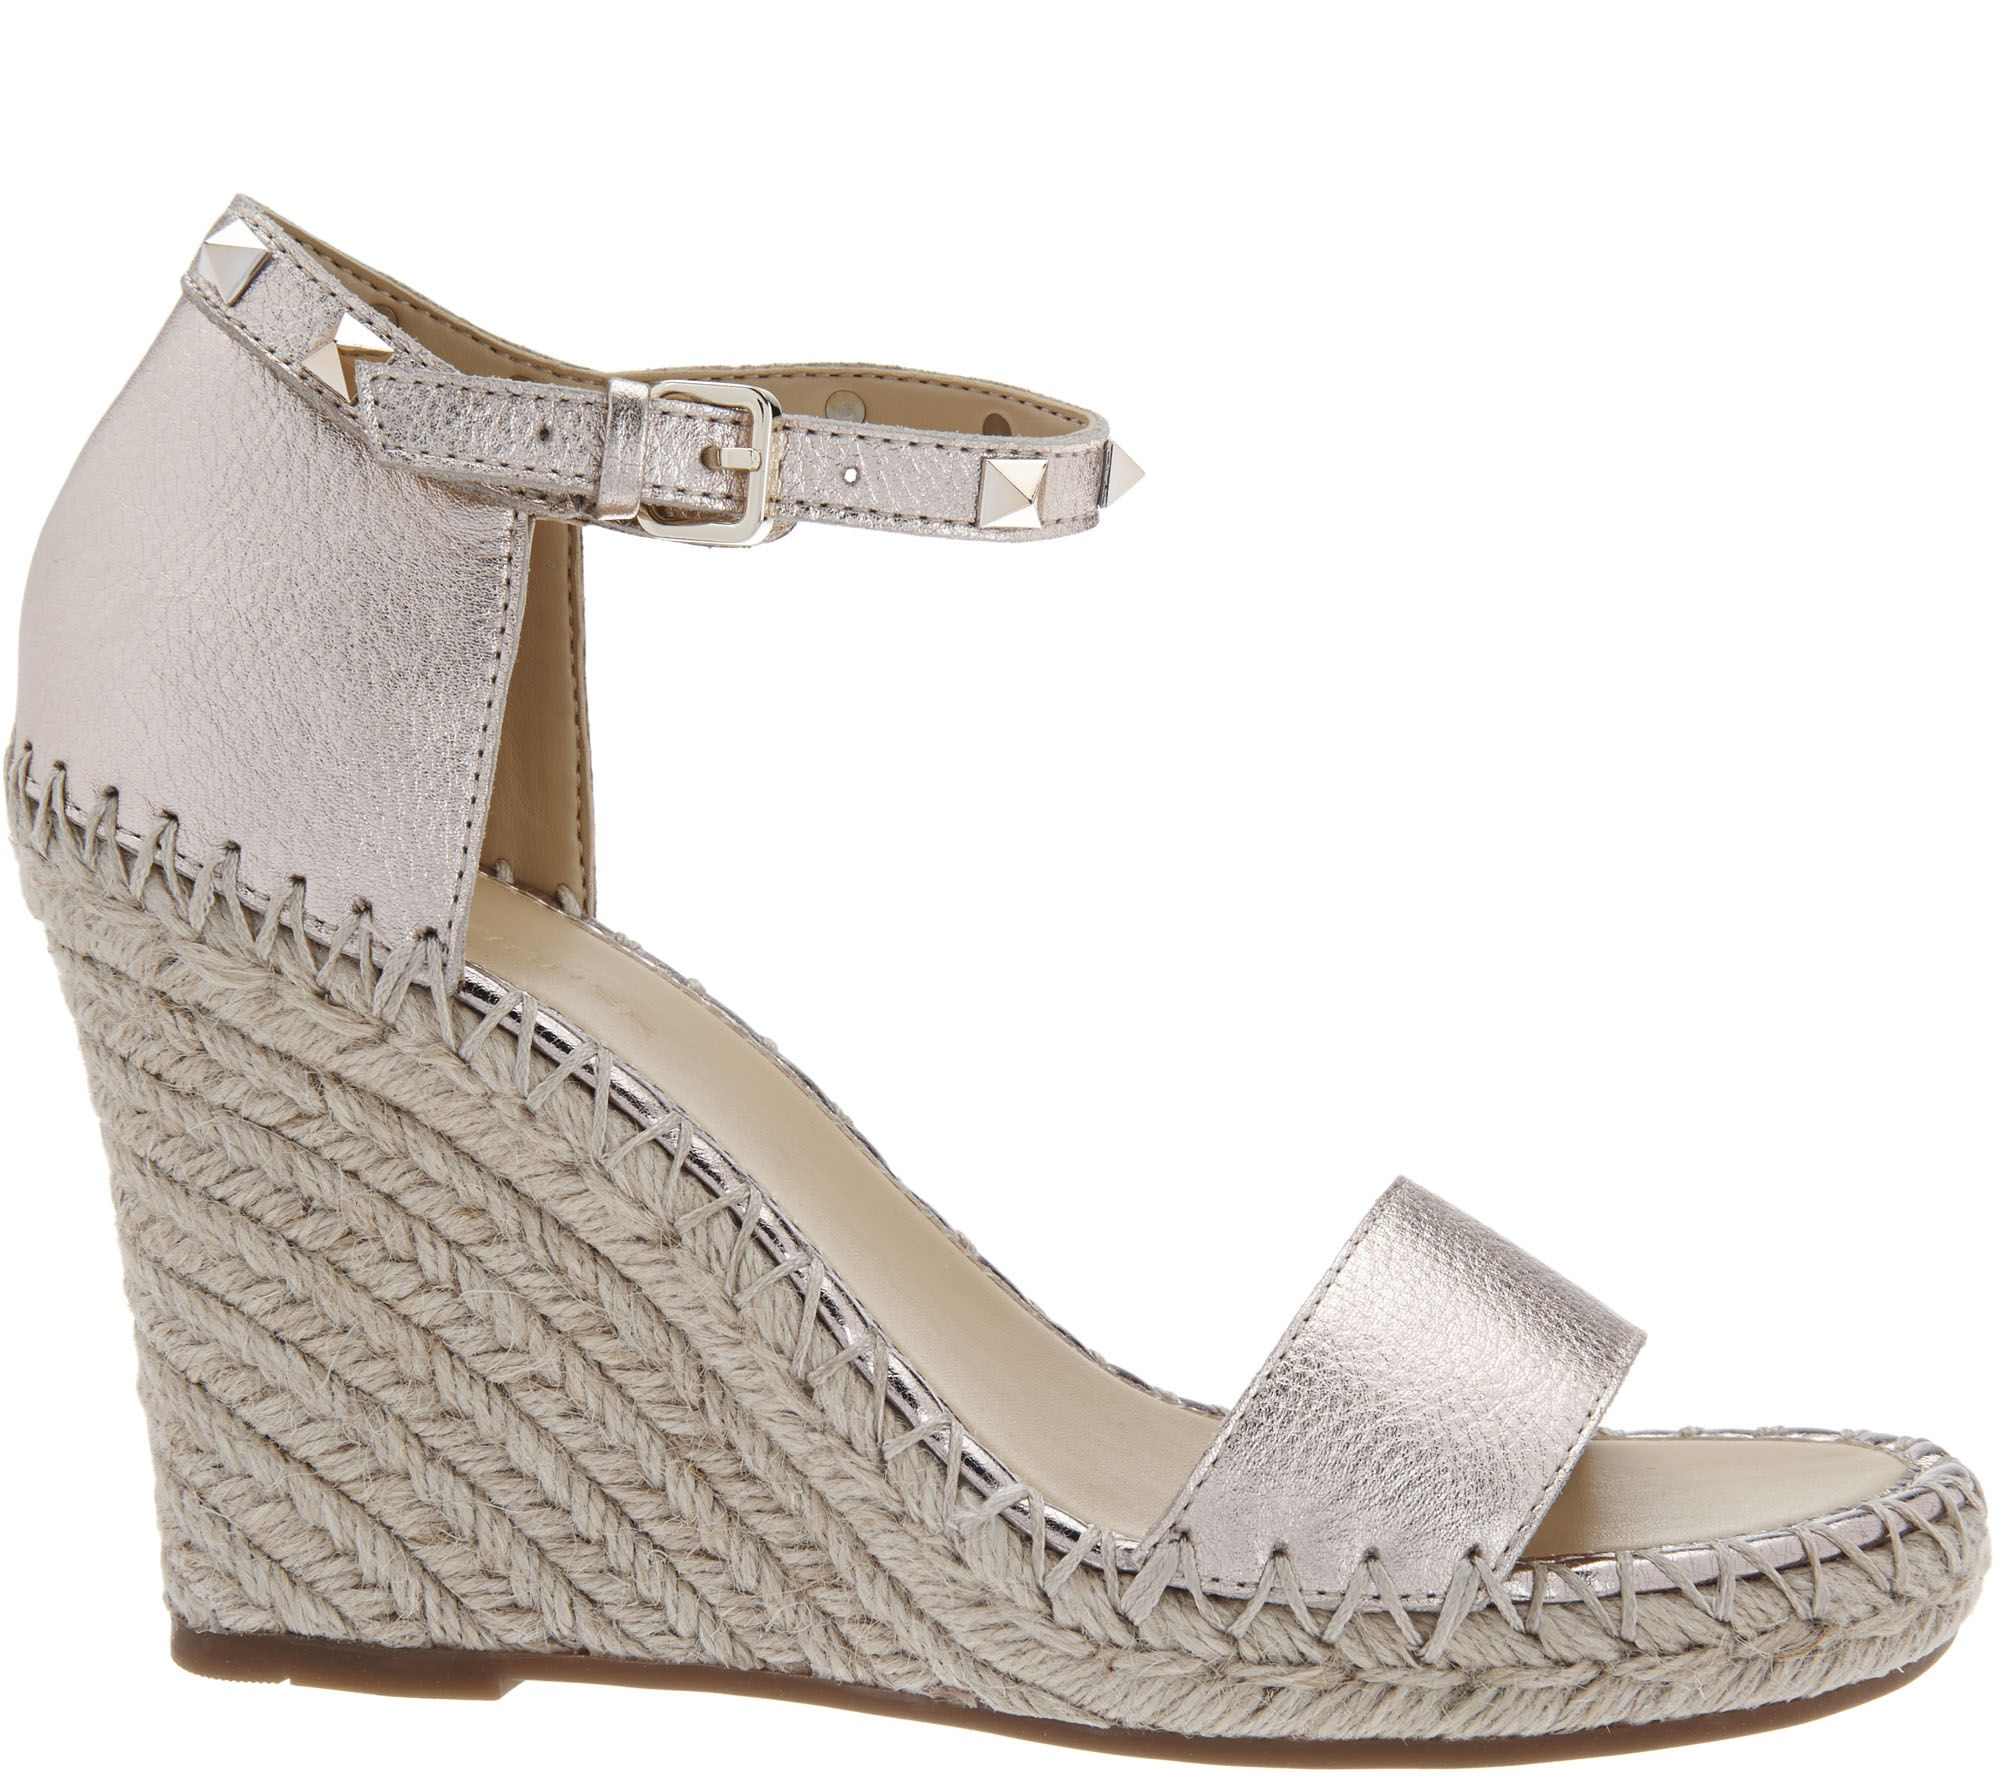 9be1403f1cf Marc Fisher Leather Espadrille Wedges - Kicker - Page 1 — QVC.com